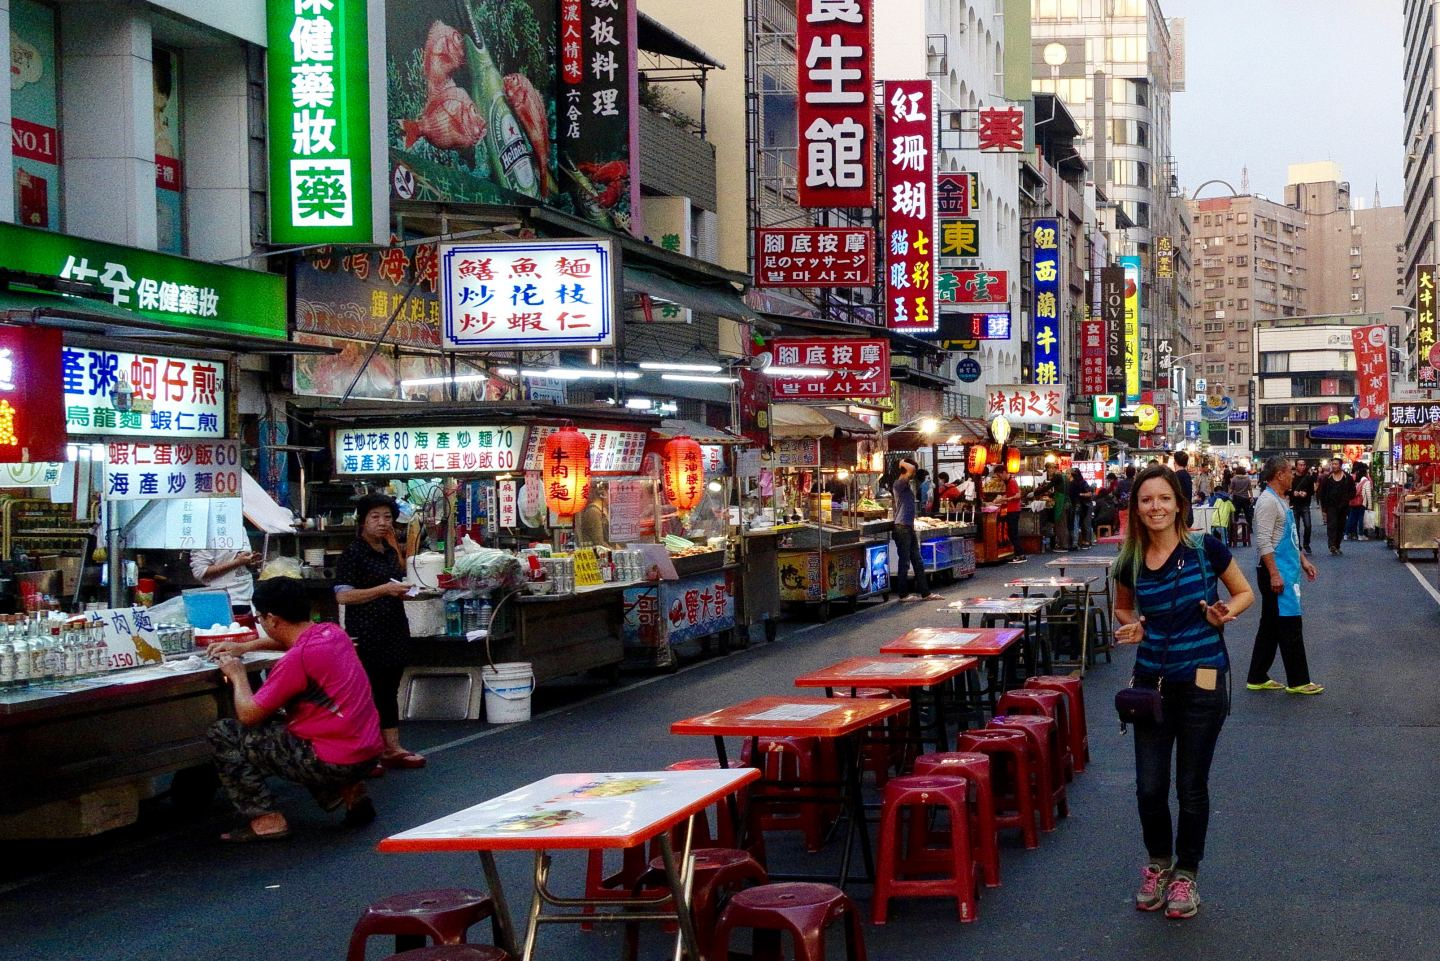 Taiwanese Food: 14 Amazing Night Market Street Foods to Try and 1 to Avoid